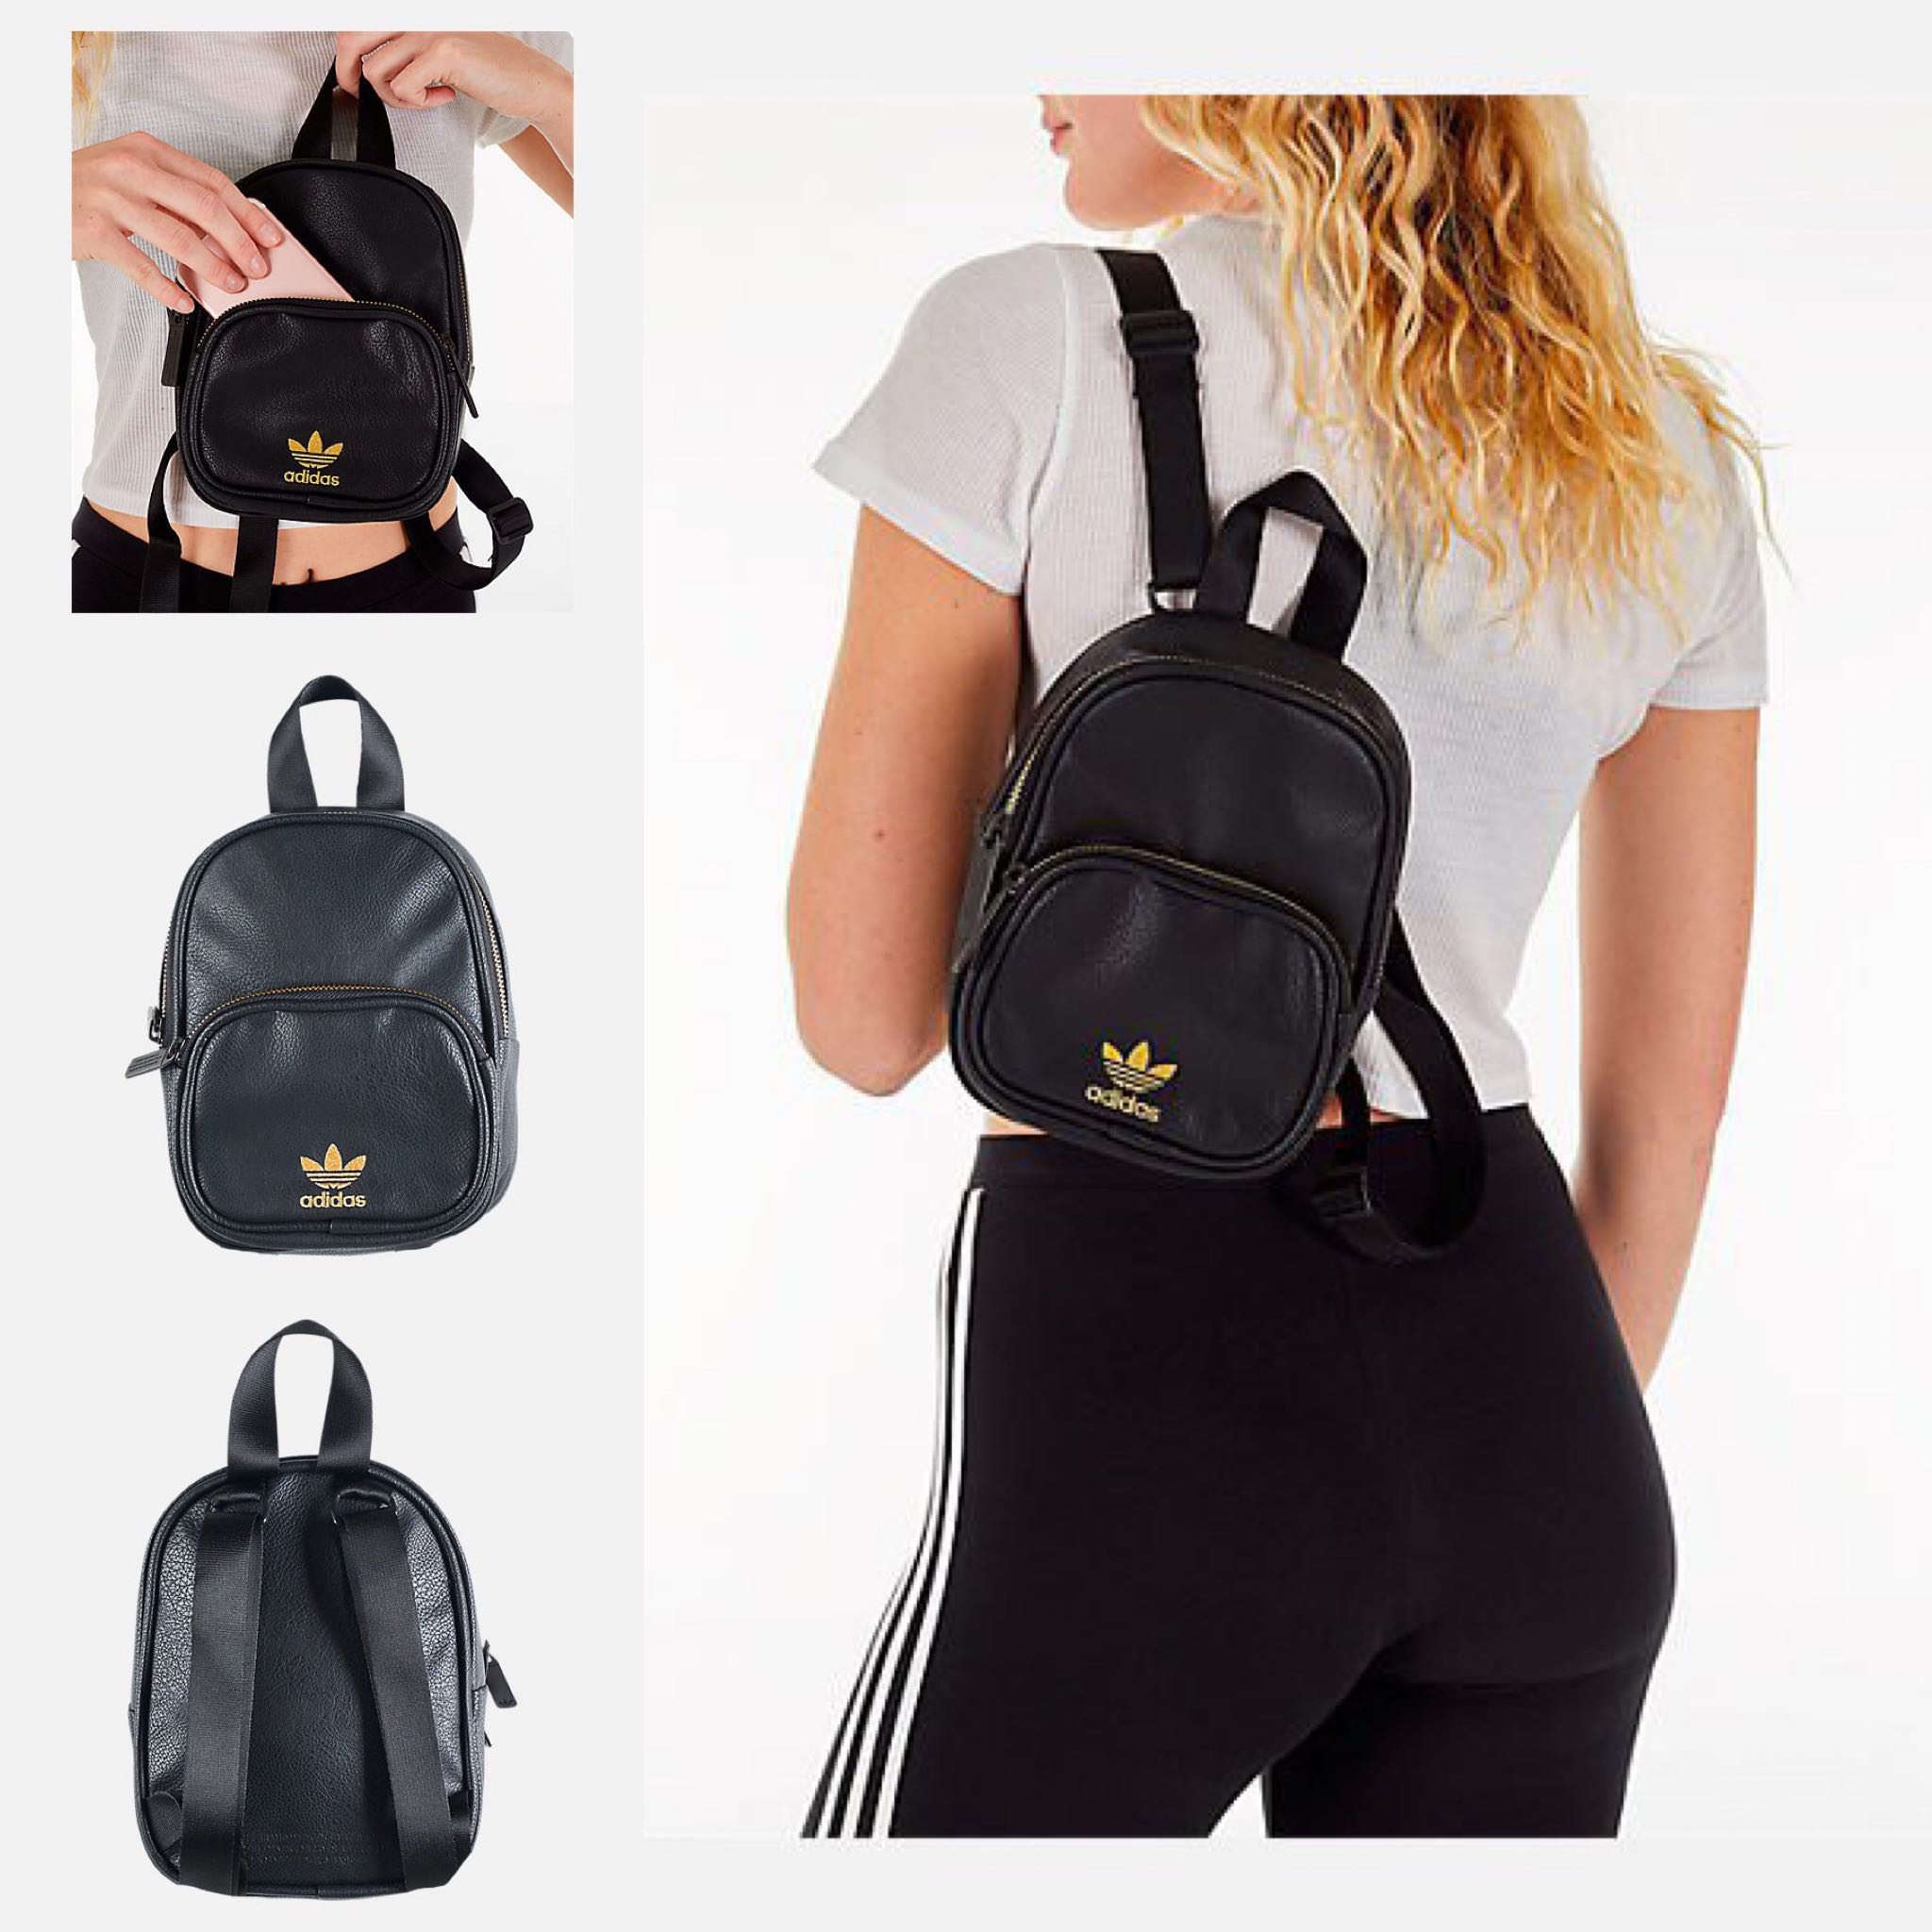 bd19fe04d Adidas Originals Faux Leather Black Gold Mini Backpack, Women's ...